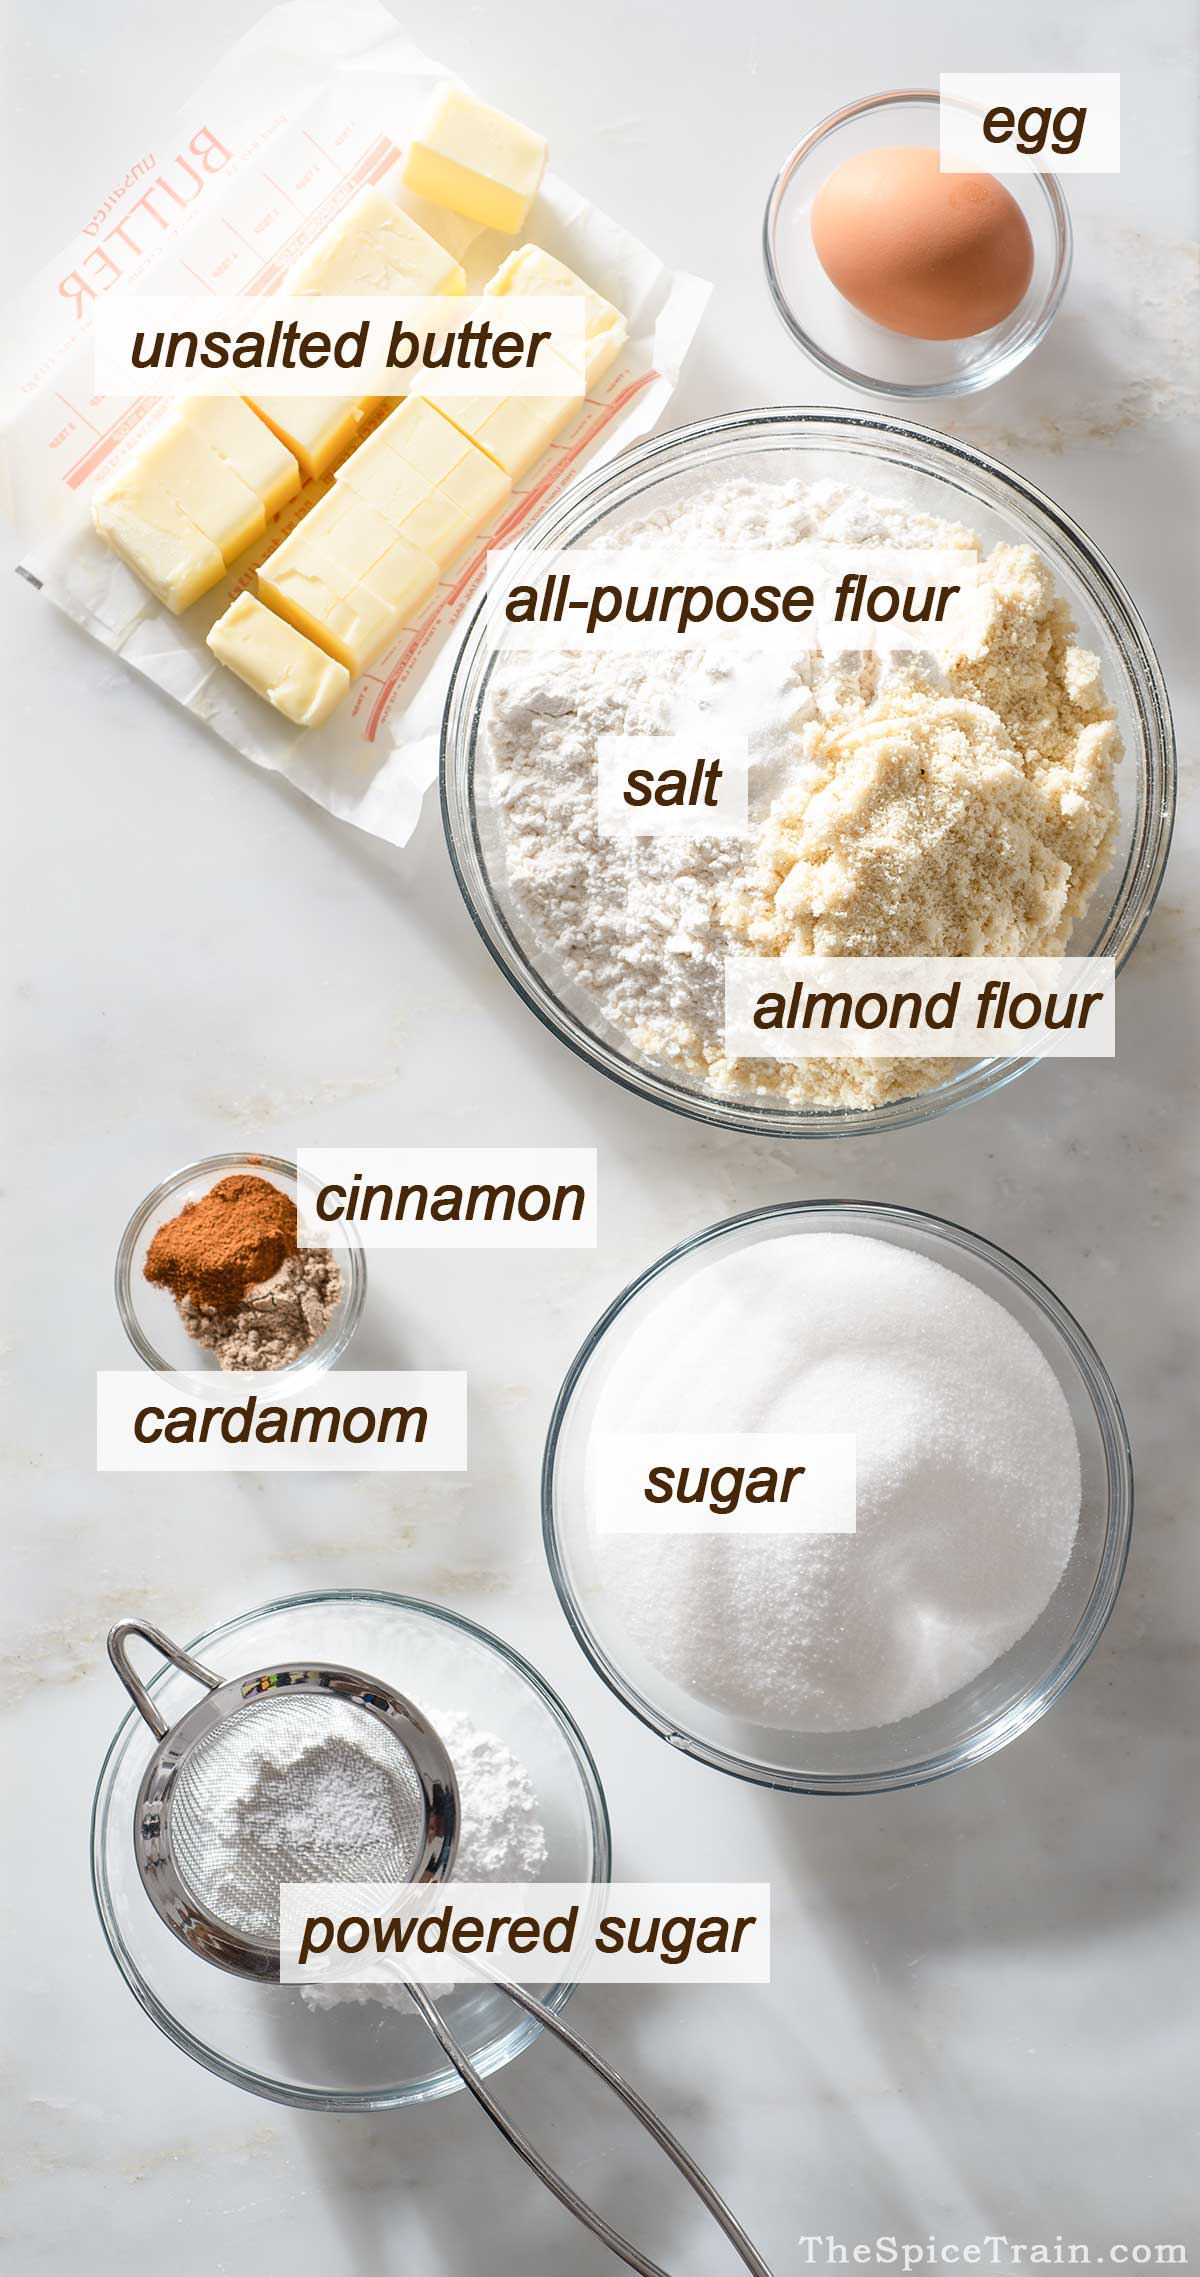 Cookie dough ingredients on a kitchen counter.